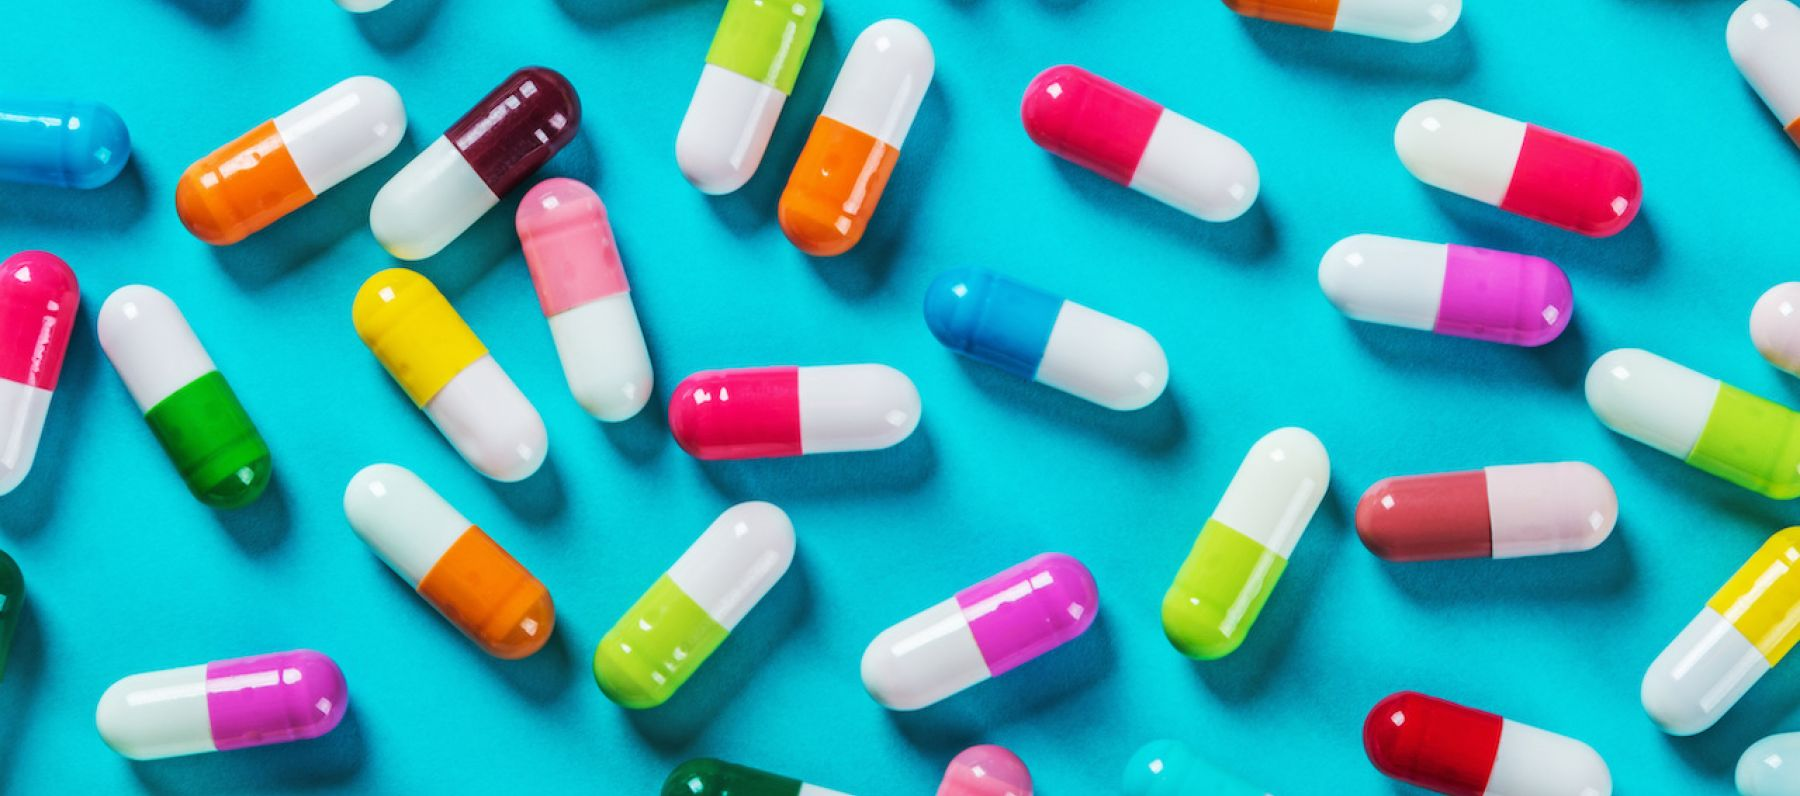 ThinkPlace is helping to make medicines safer for all Australians